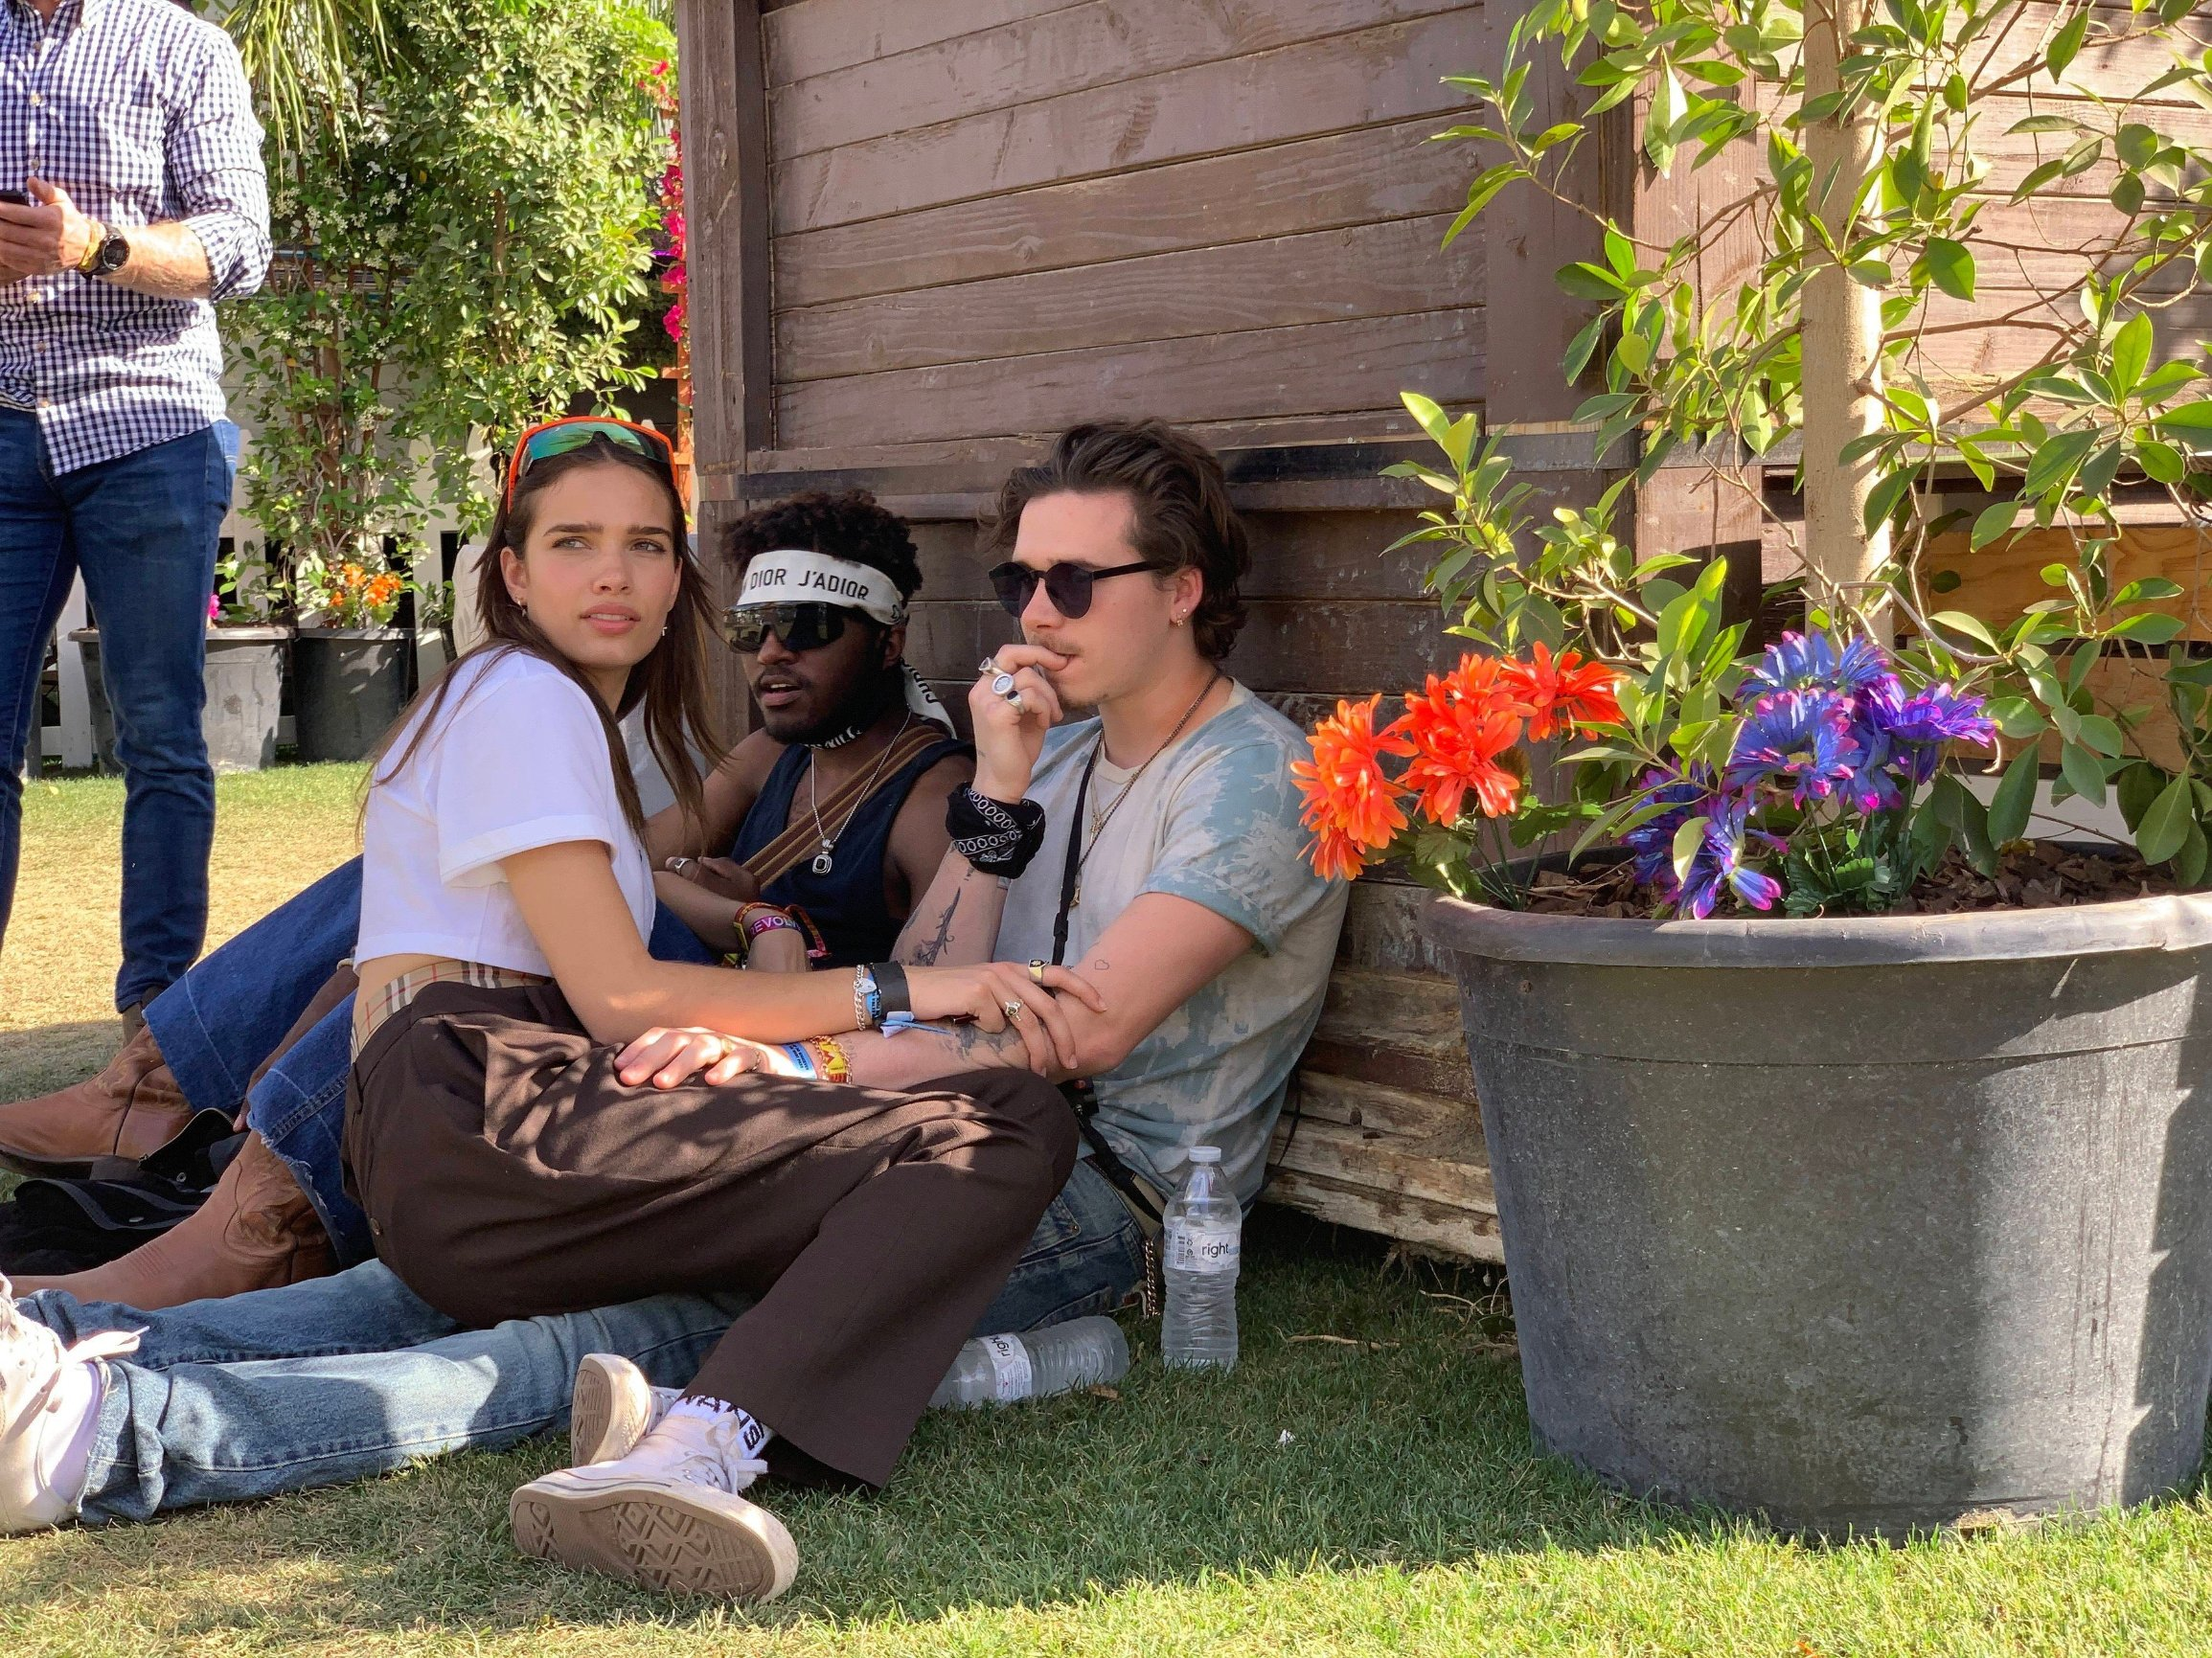 Brooklyn Beckham and his girlfriend Hana Cross get coZy as they enjoy some Time backstage at Coachella . 14 Apr 2019, Image: 426163319, License: Rights-managed, Restrictions: World Rights, Model Release: no, Credit line: Profimedia, Mega Agency